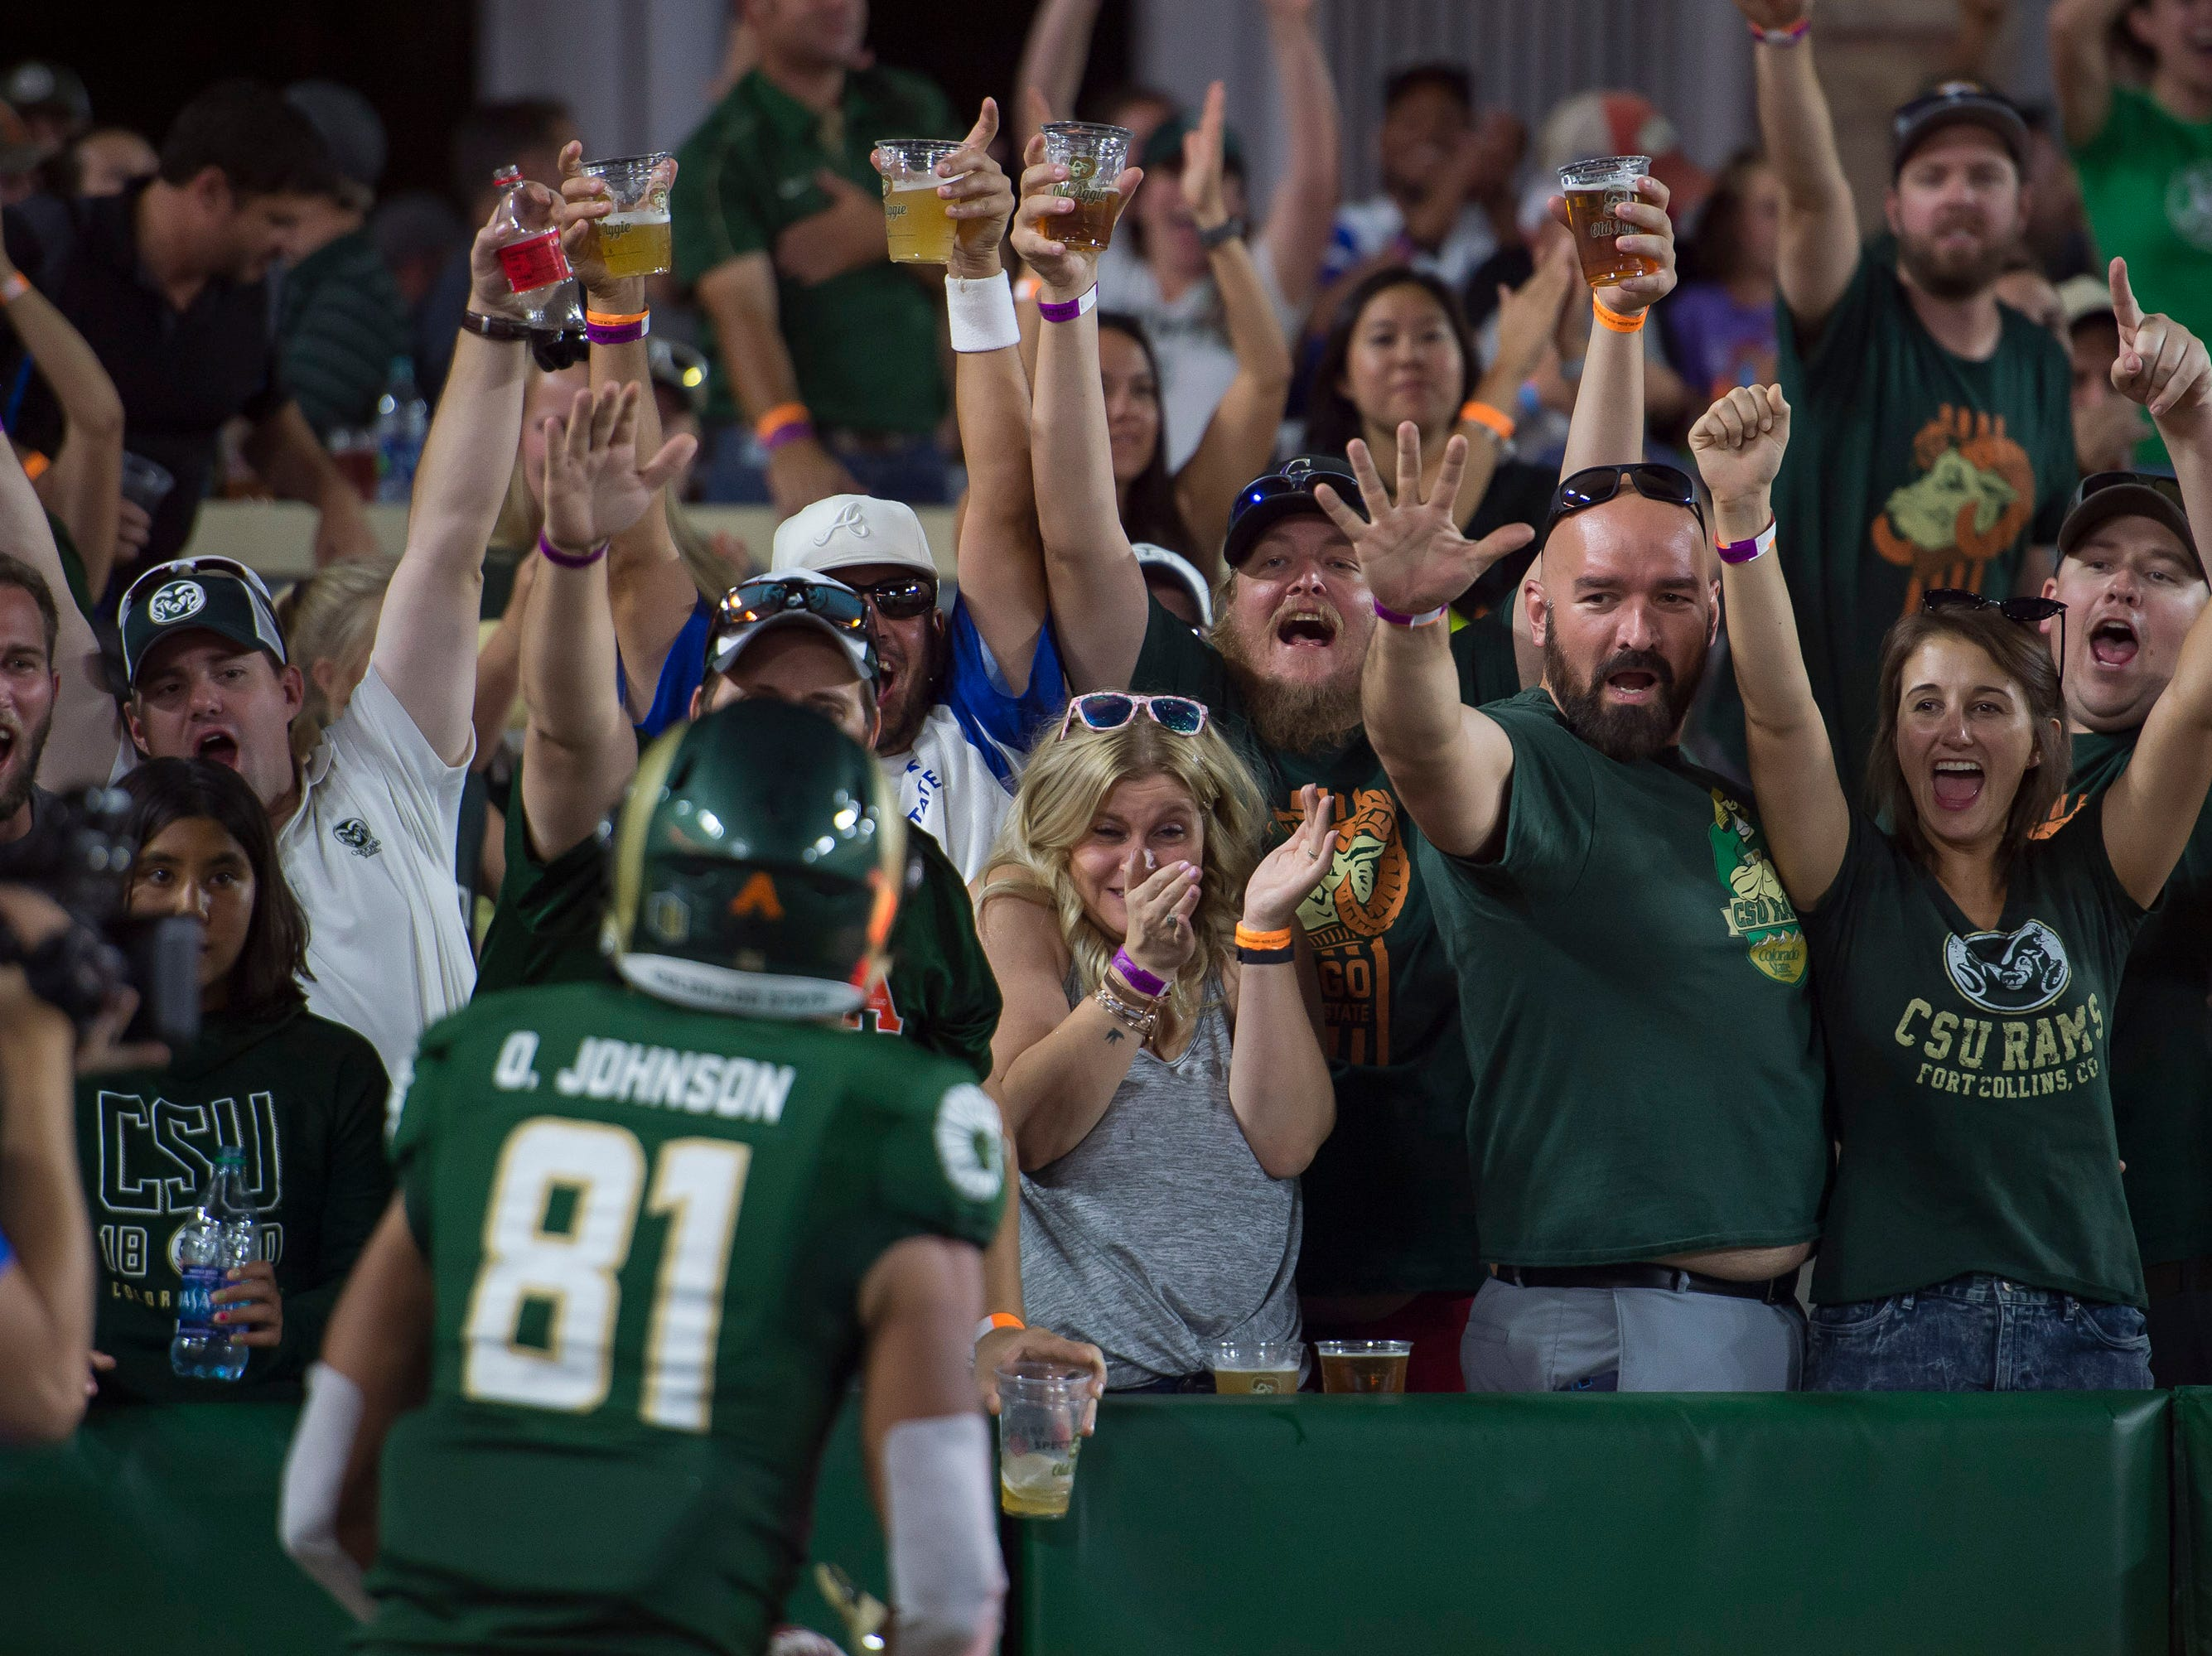 Fans on the New Belgium porch celebrate as Colorado State senior wide receiver Olabisi Johnson (81) scores a touchdown on a long reception from quarterback K.J. Carta-Samuels (1) during a game against the University of Hawaii Rainbow Warriors on Saturday, Aug. 25, 2018, at Canvas Stadium in Fort Collins, Colo.